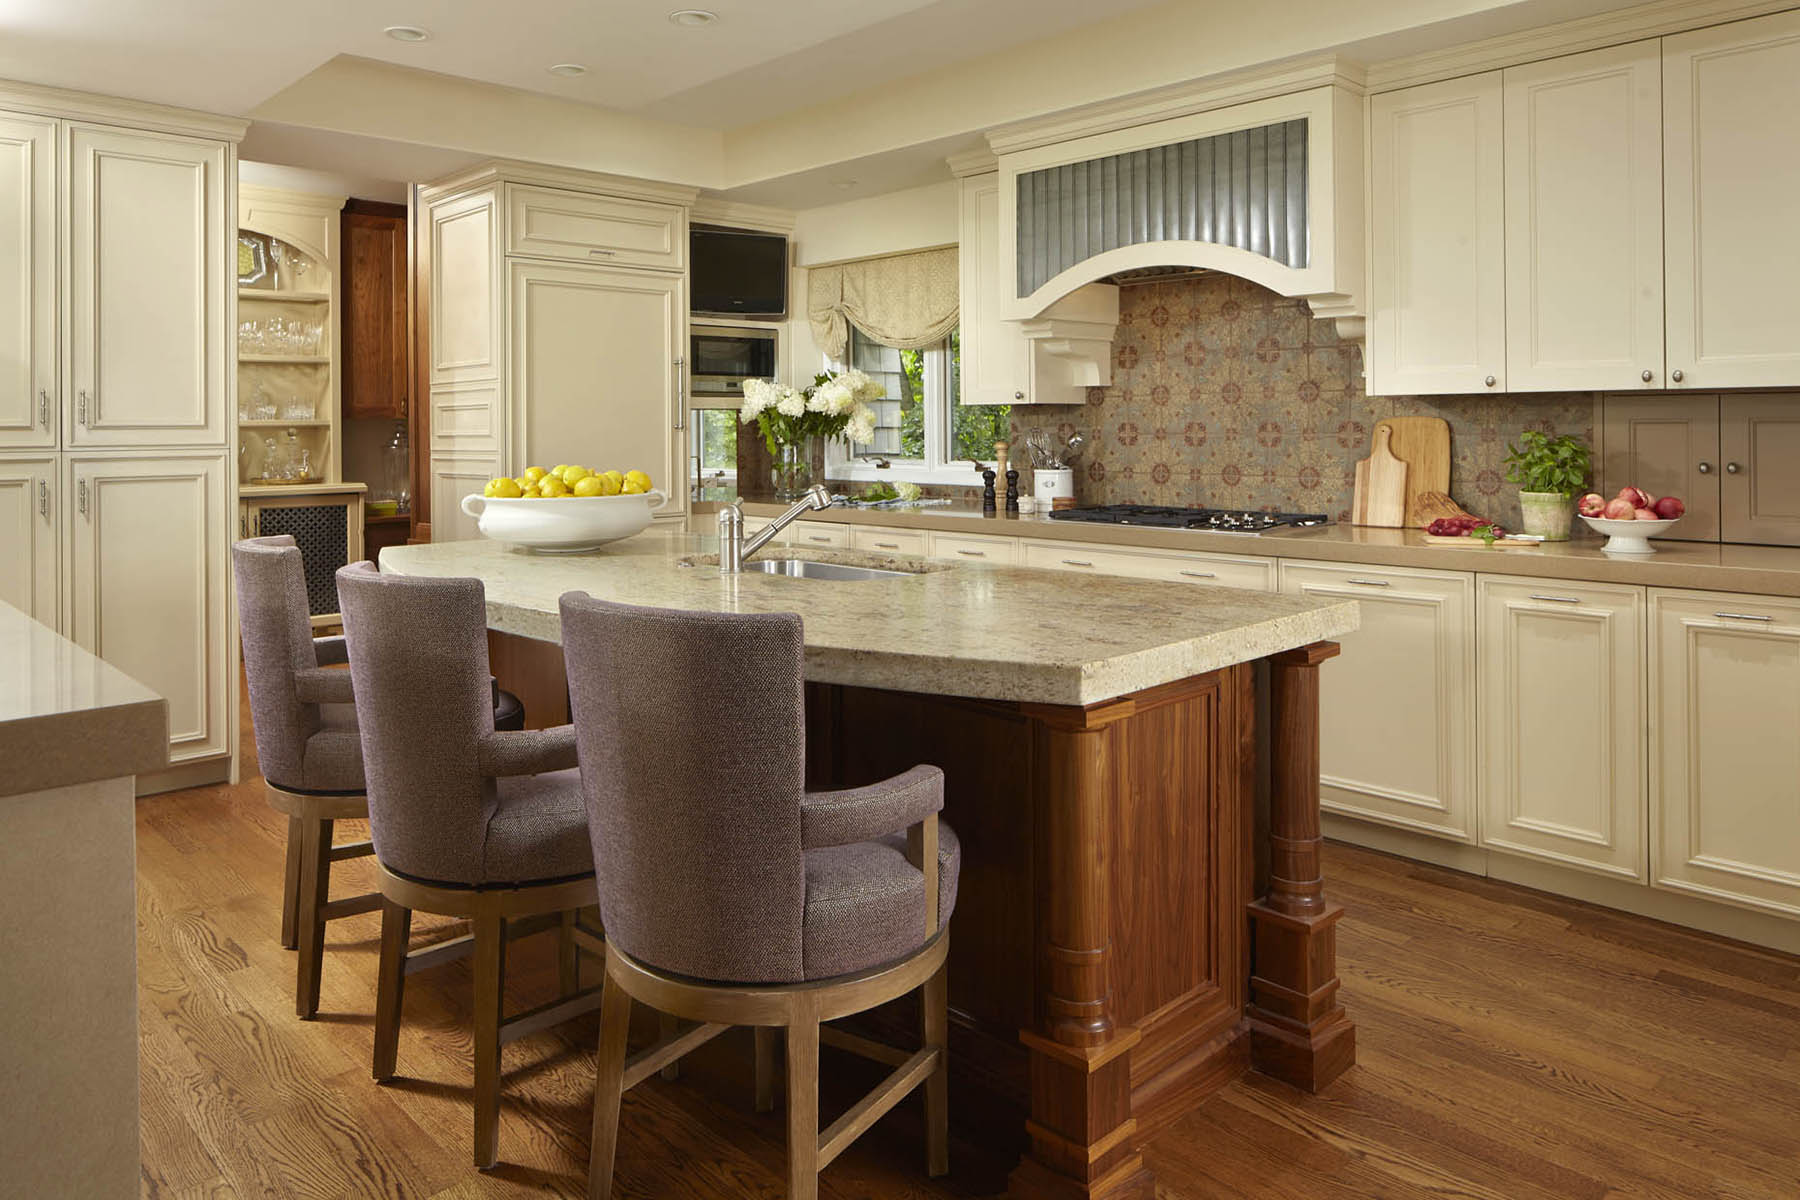 2-custom-gourmet-island-kitchen-minneapolis-interior-designer.jpg